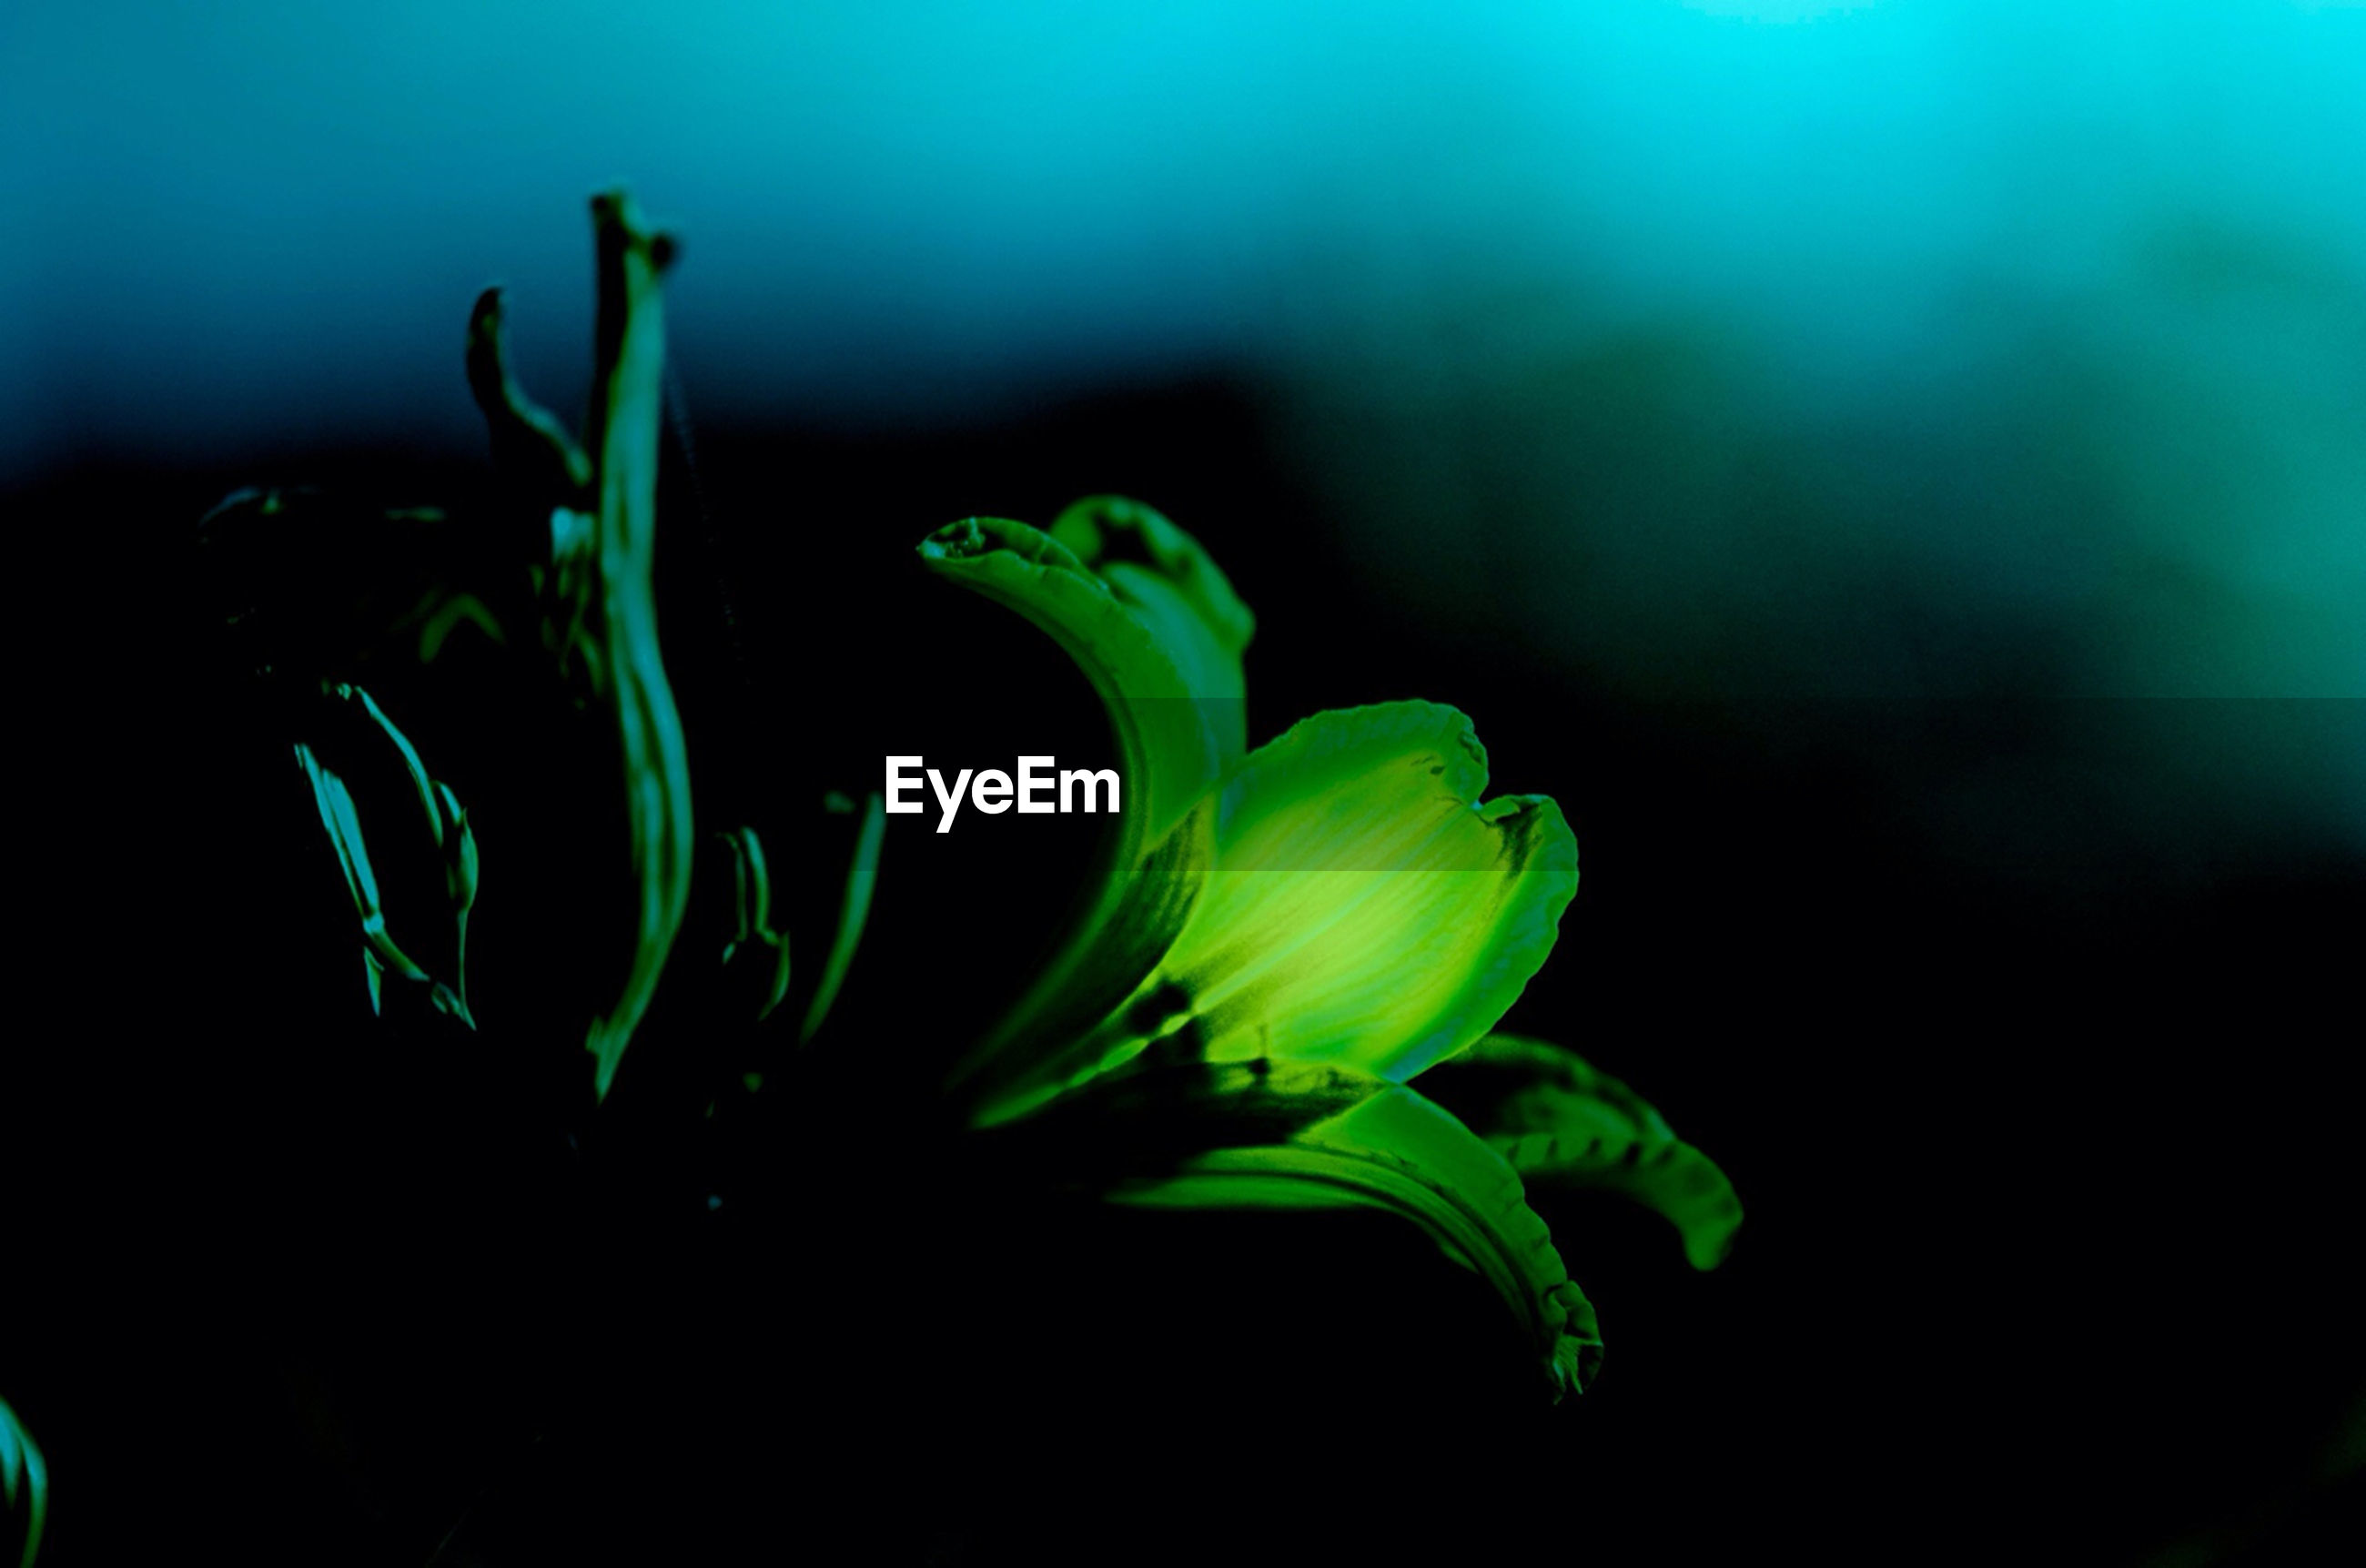 growth, flower, plant, close-up, fragility, freshness, beauty in nature, petal, nature, flower head, stem, focus on foreground, leaf, green color, bud, selective focus, blooming, black background, no people, new life